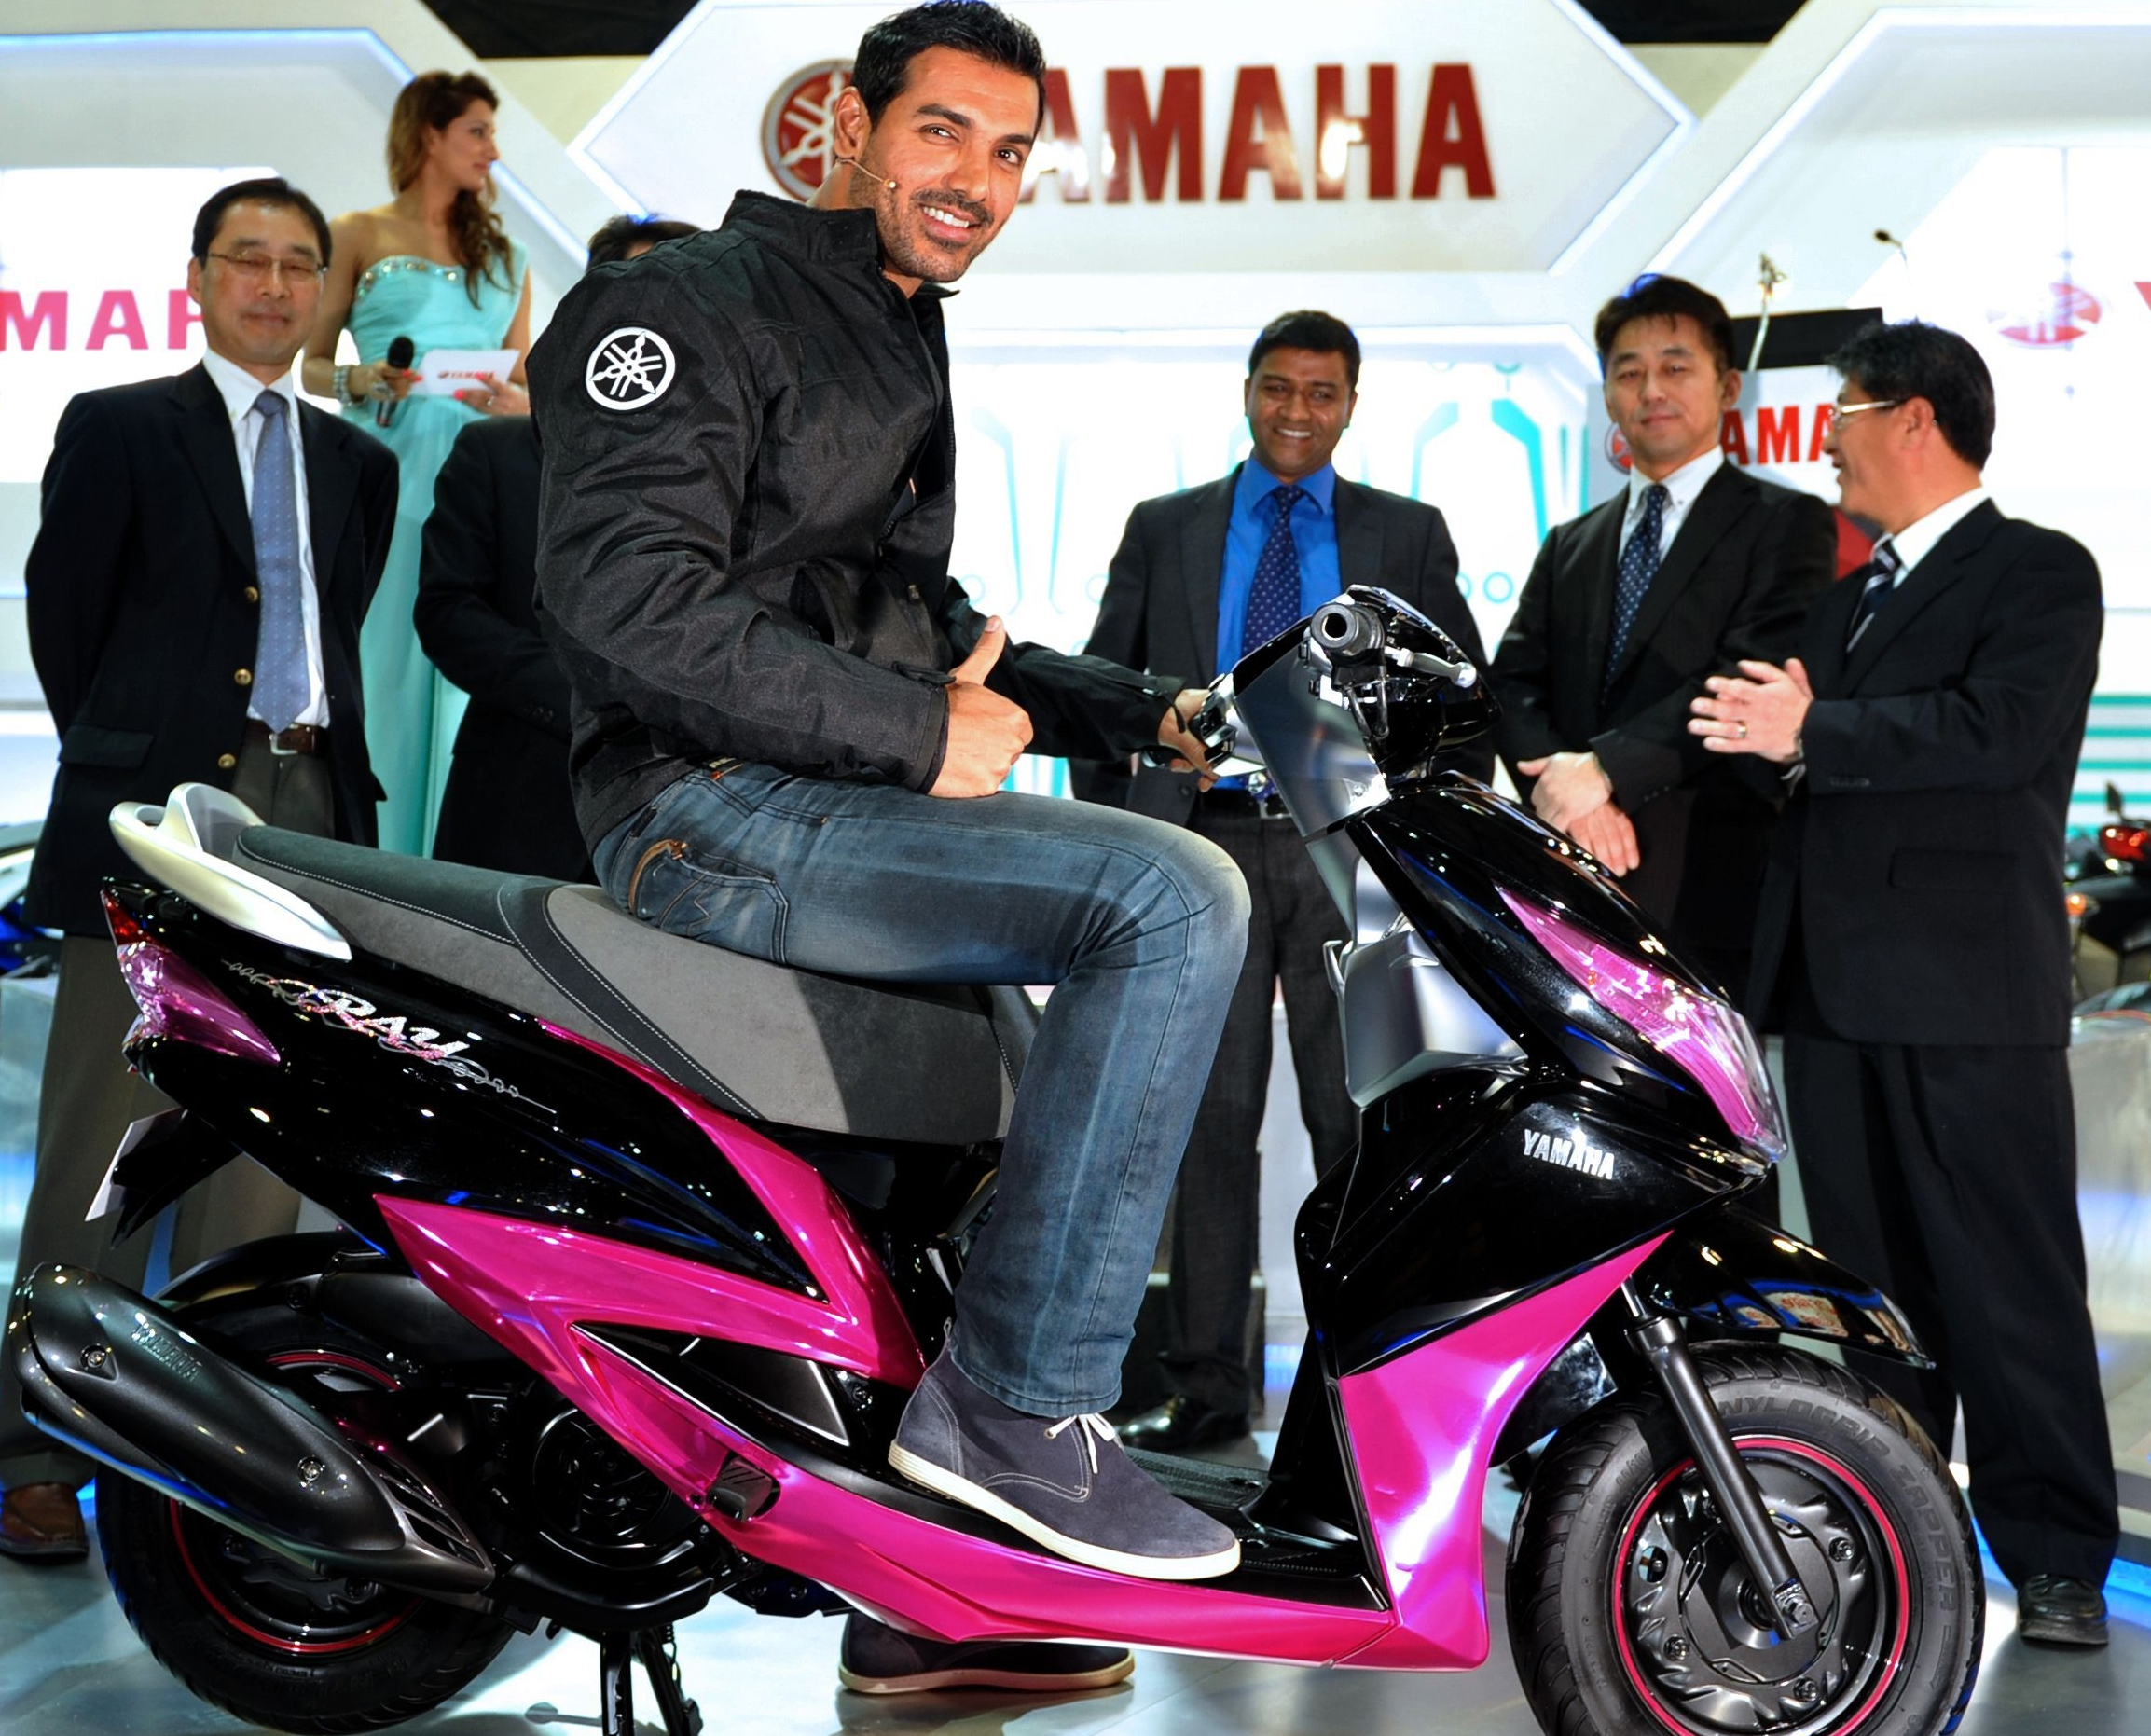 John Abraham sits on a newly launched scooter as he poses with Yamaha representatives during the 2012 India Auto Expo in New Delhi.